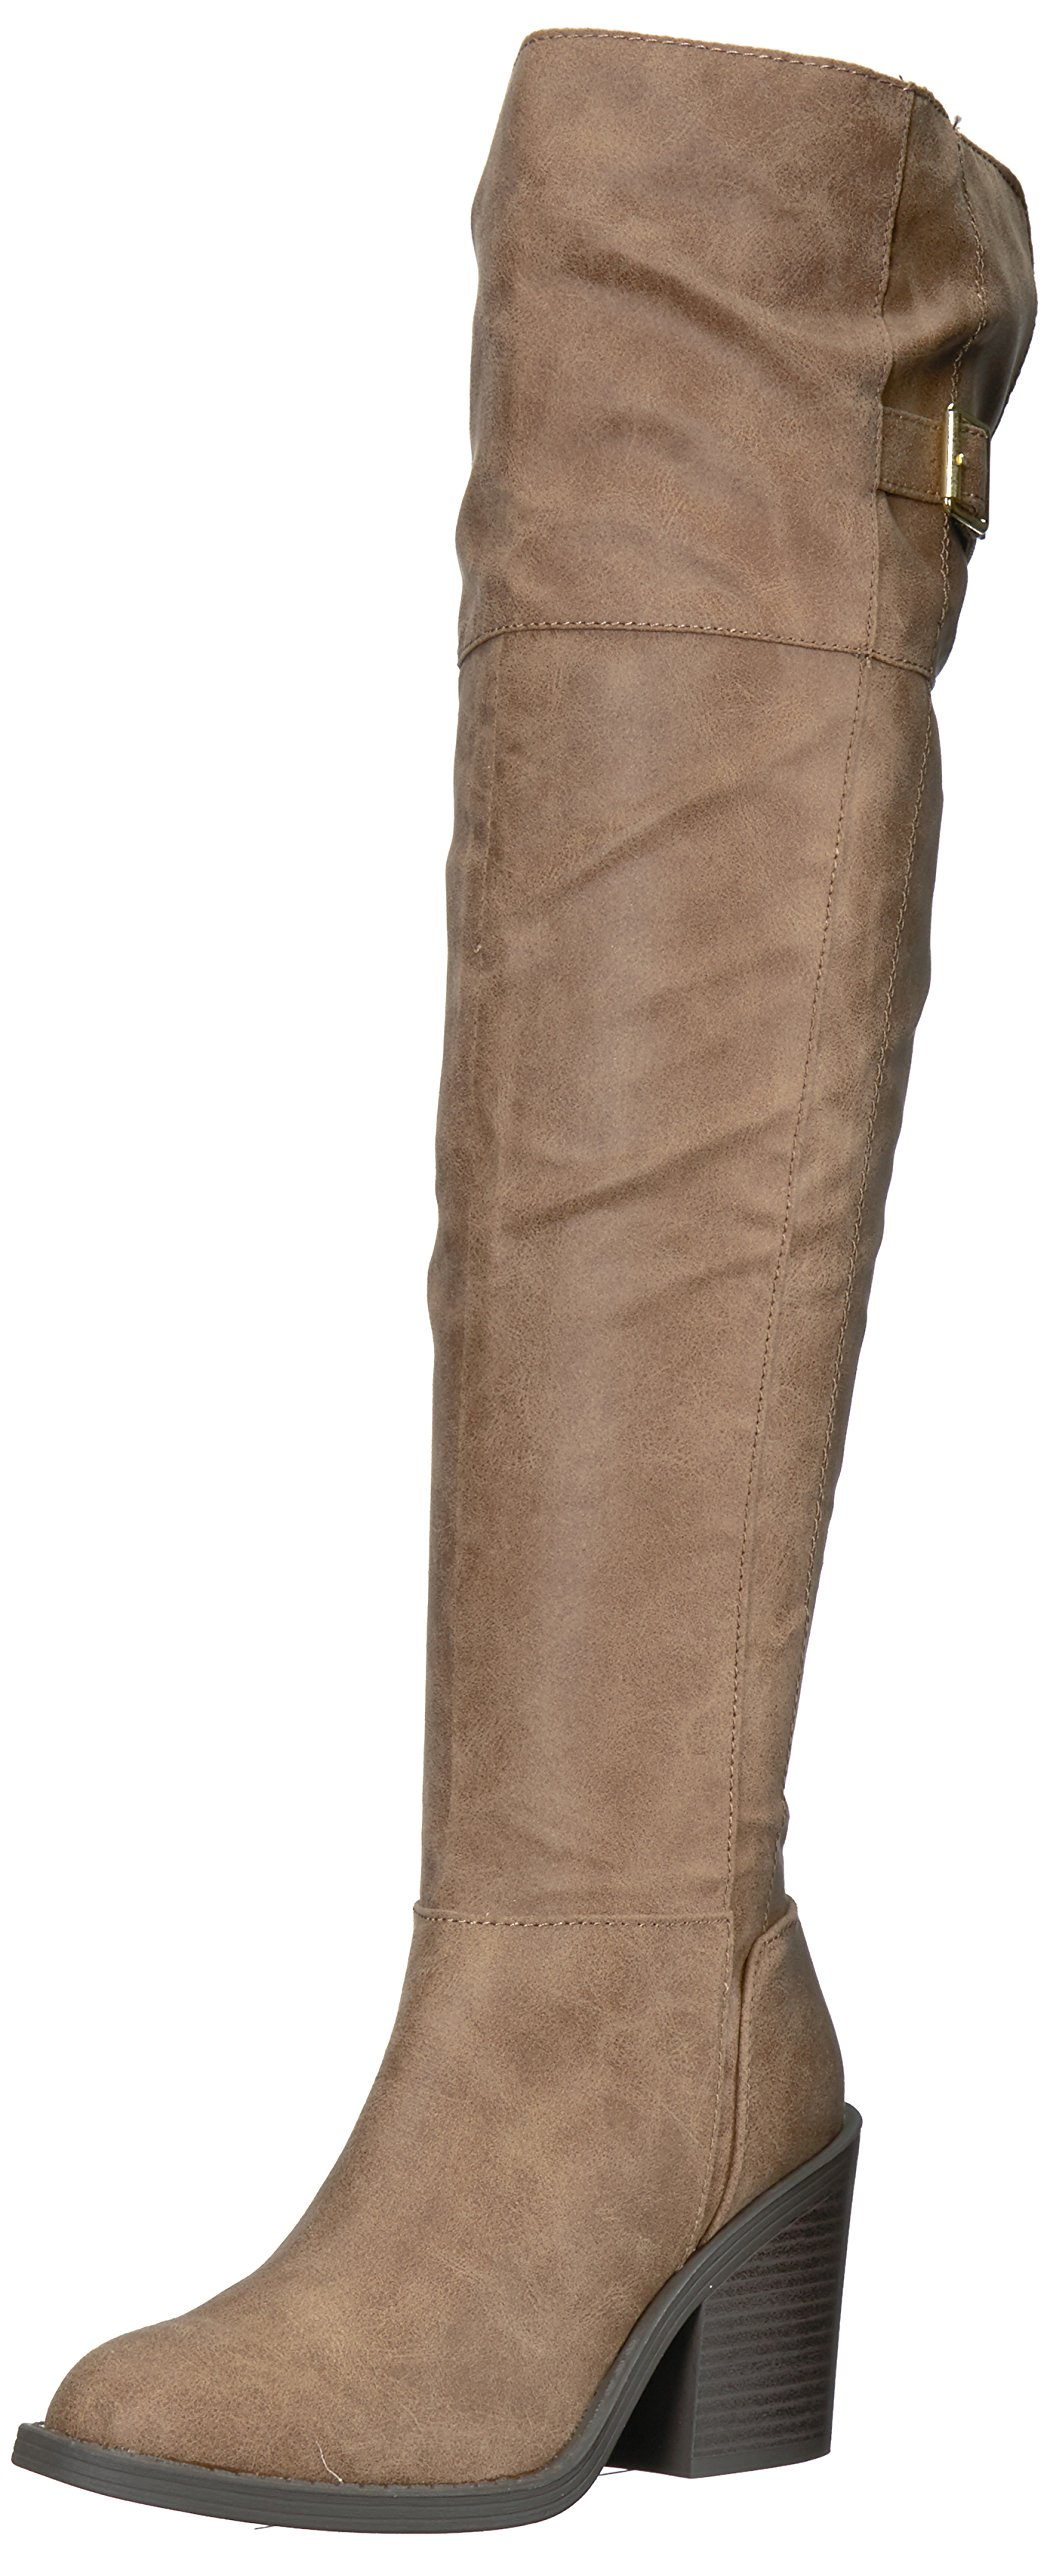 Qupid Women's Marcel-09X Over The Knee Boot, Taupe, 7.5 M US